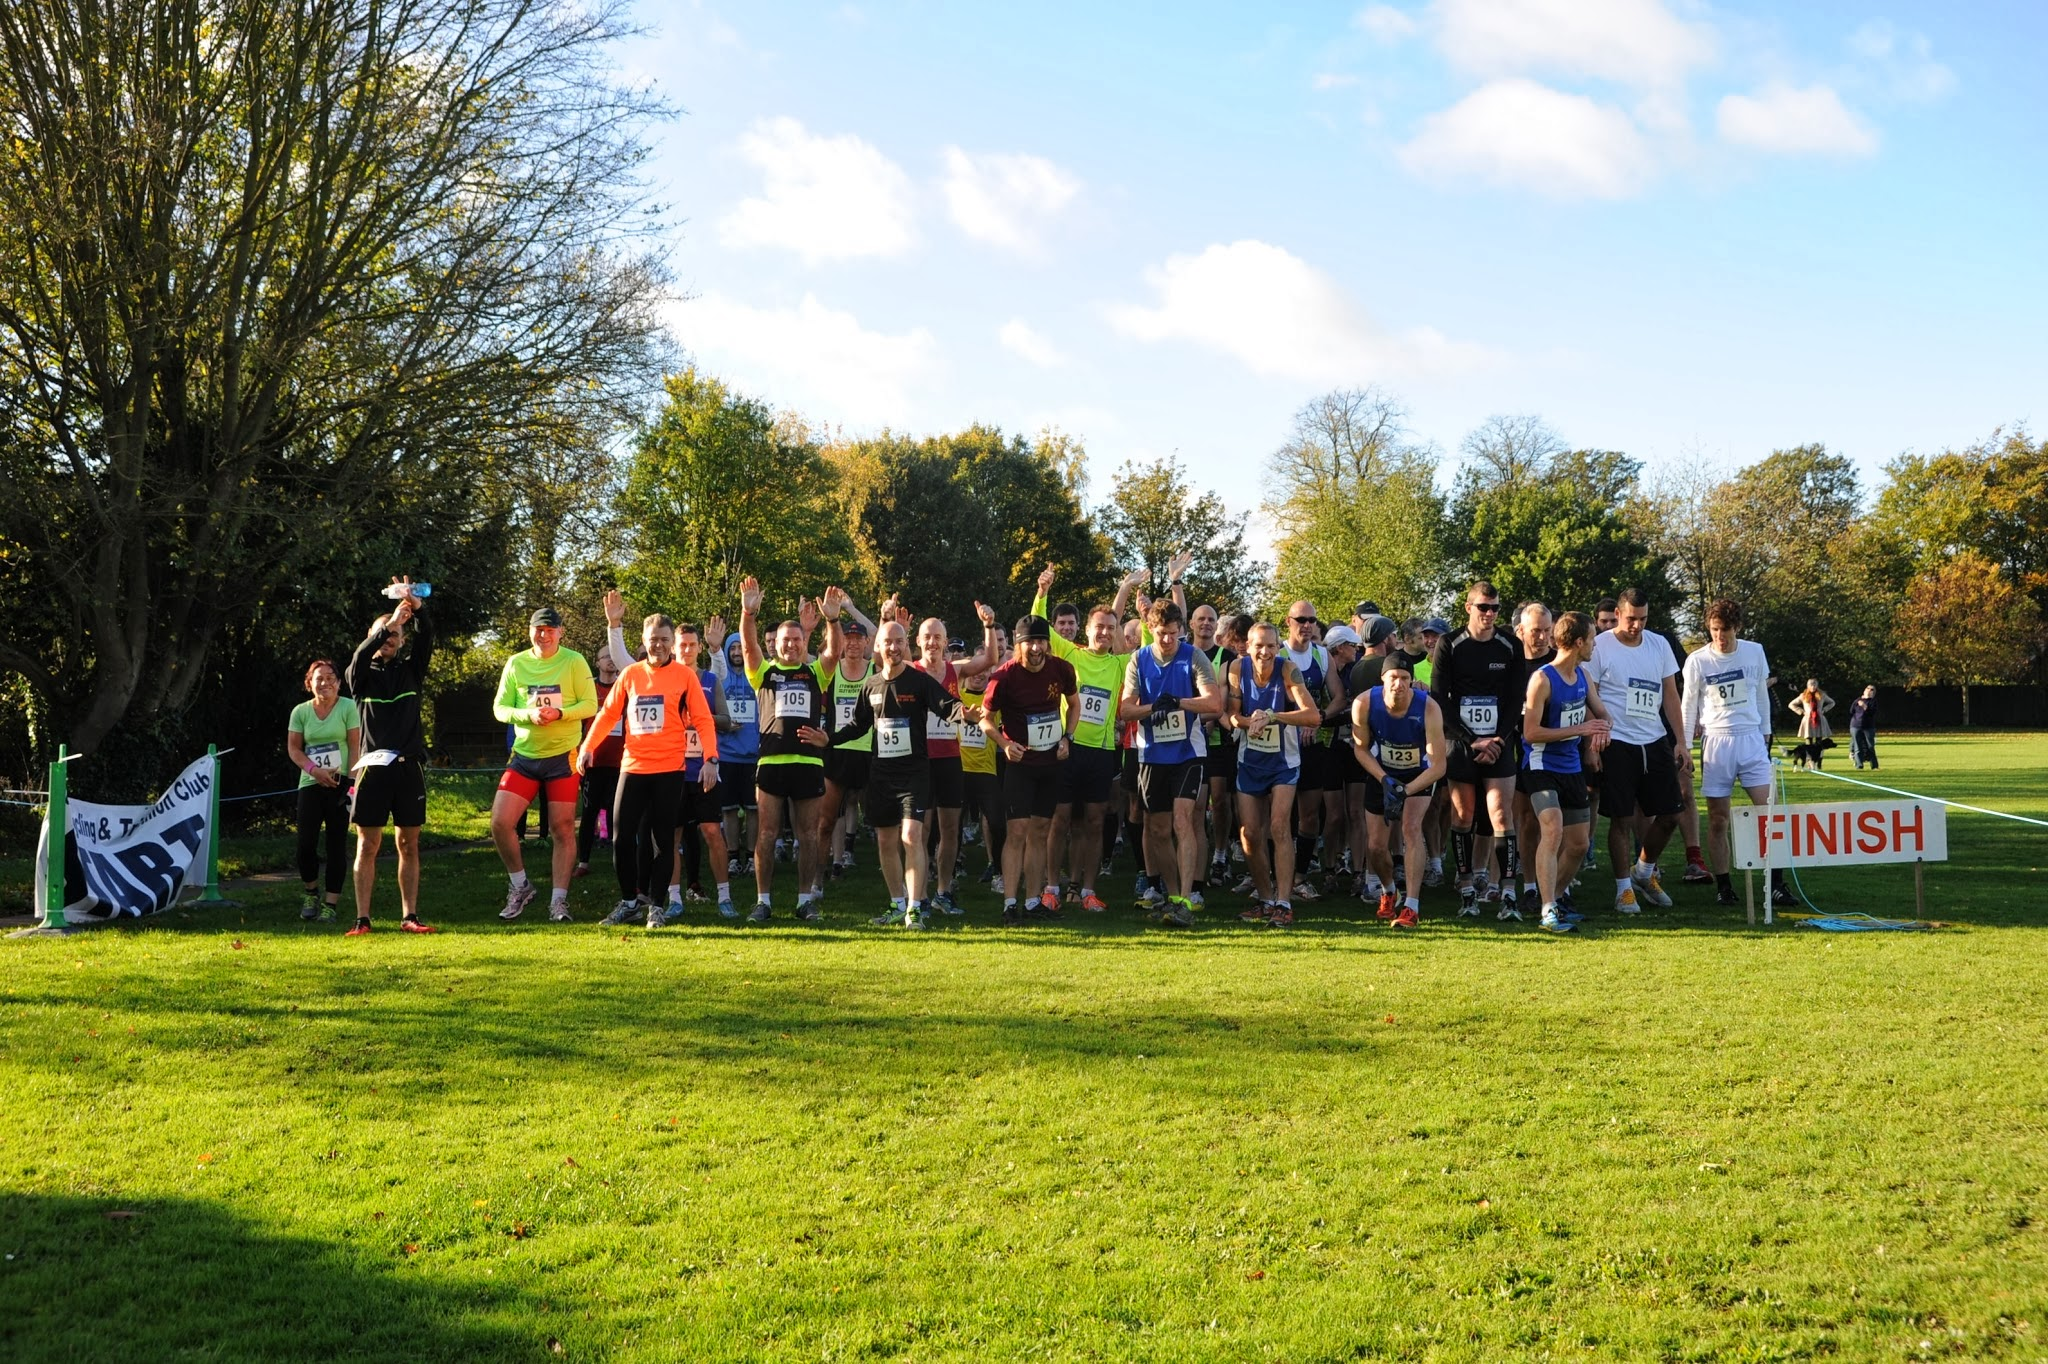 Start of the 2013 Half Marathon